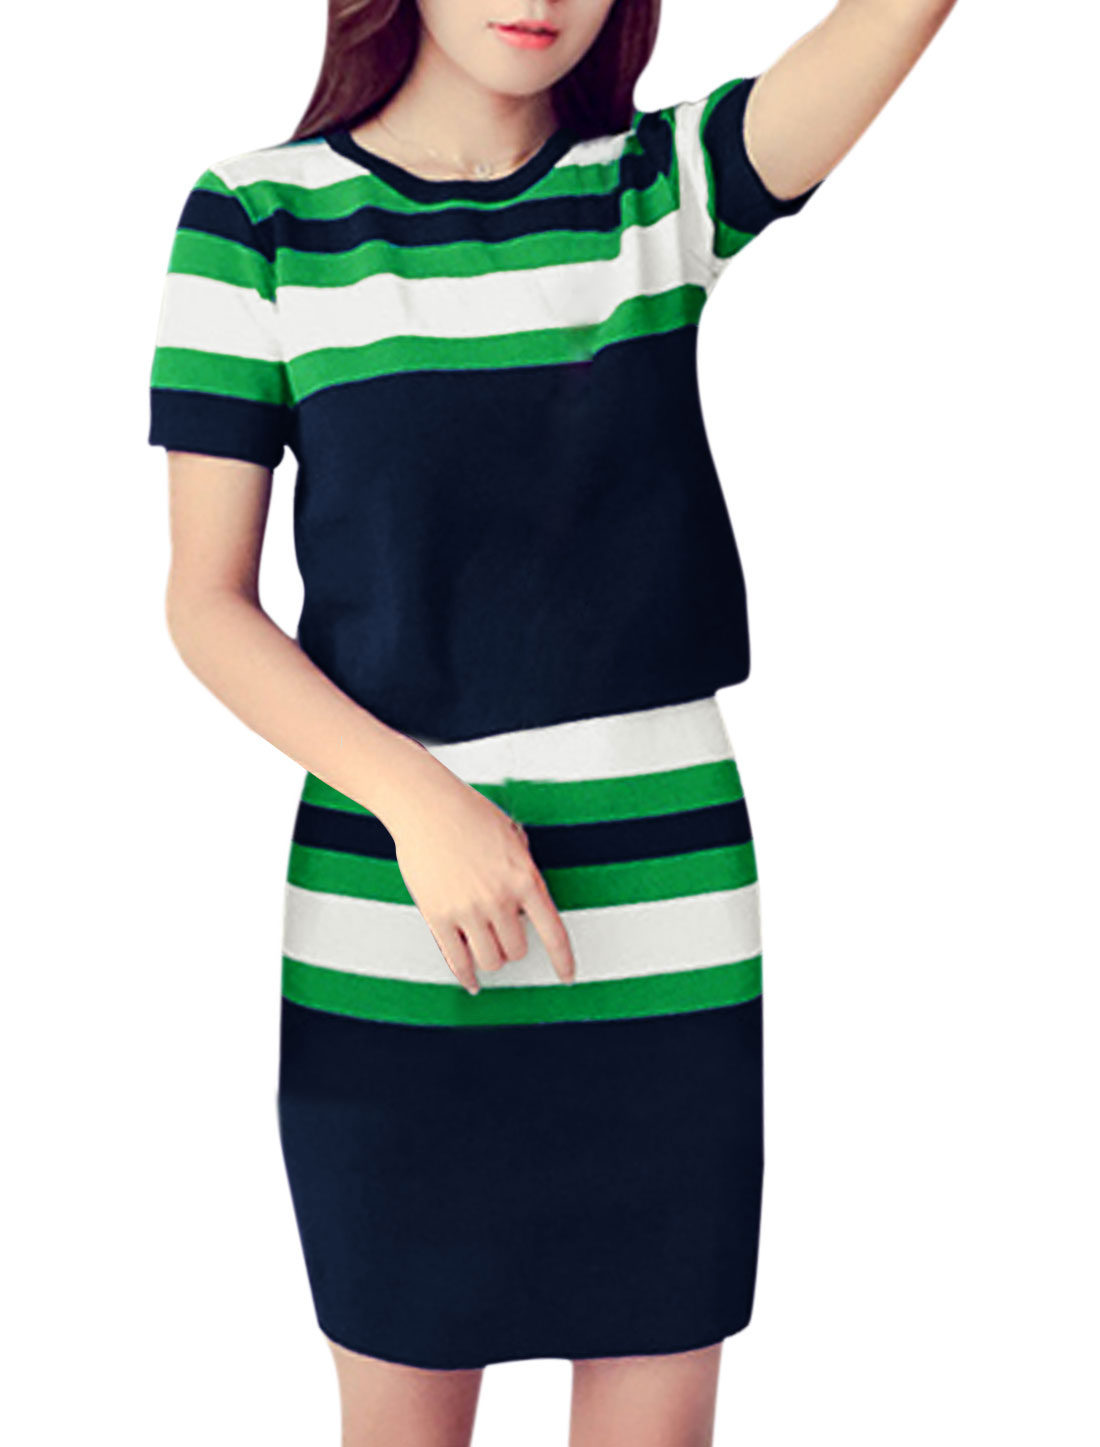 Woman Stripes Knit Top w Elastic Waist Knitted Pencil Skirt Sets Navy Blue XS